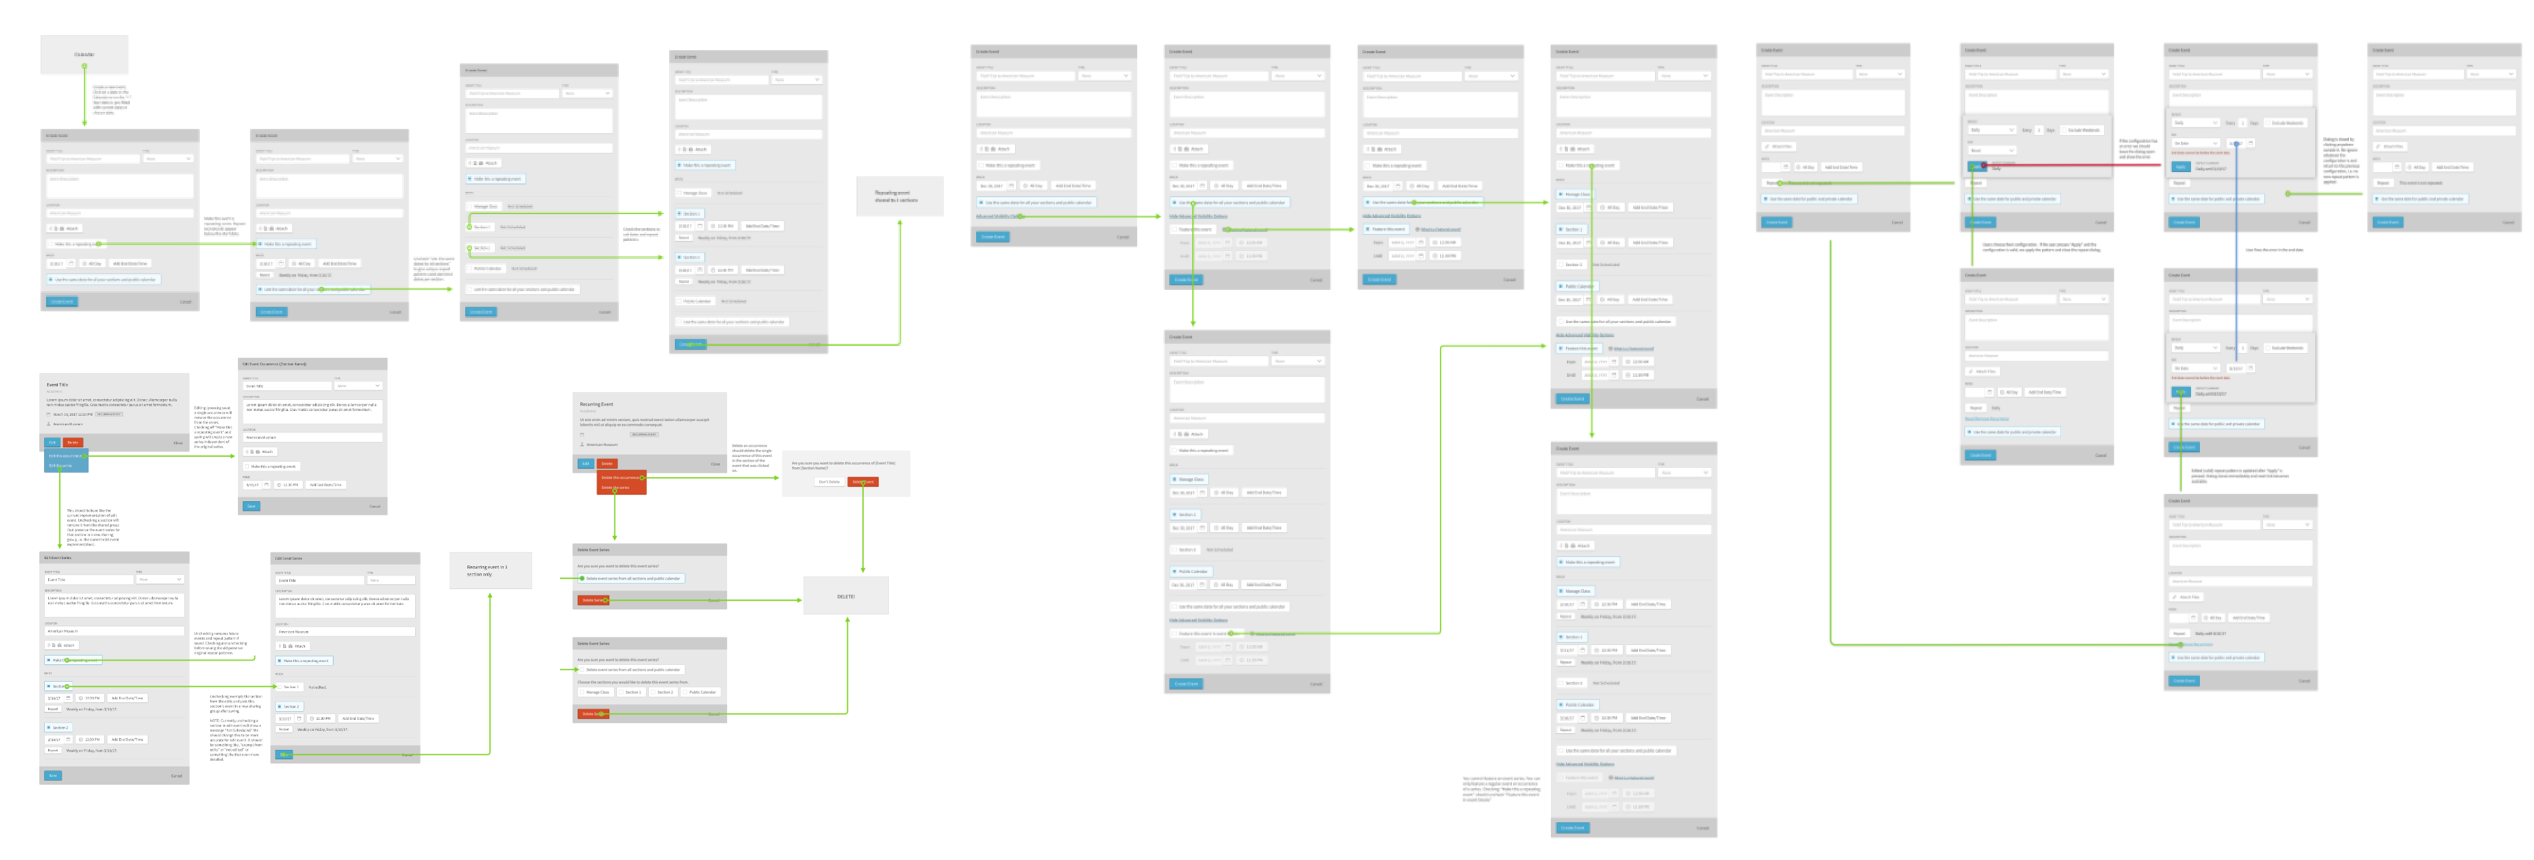 wireframes for assessments